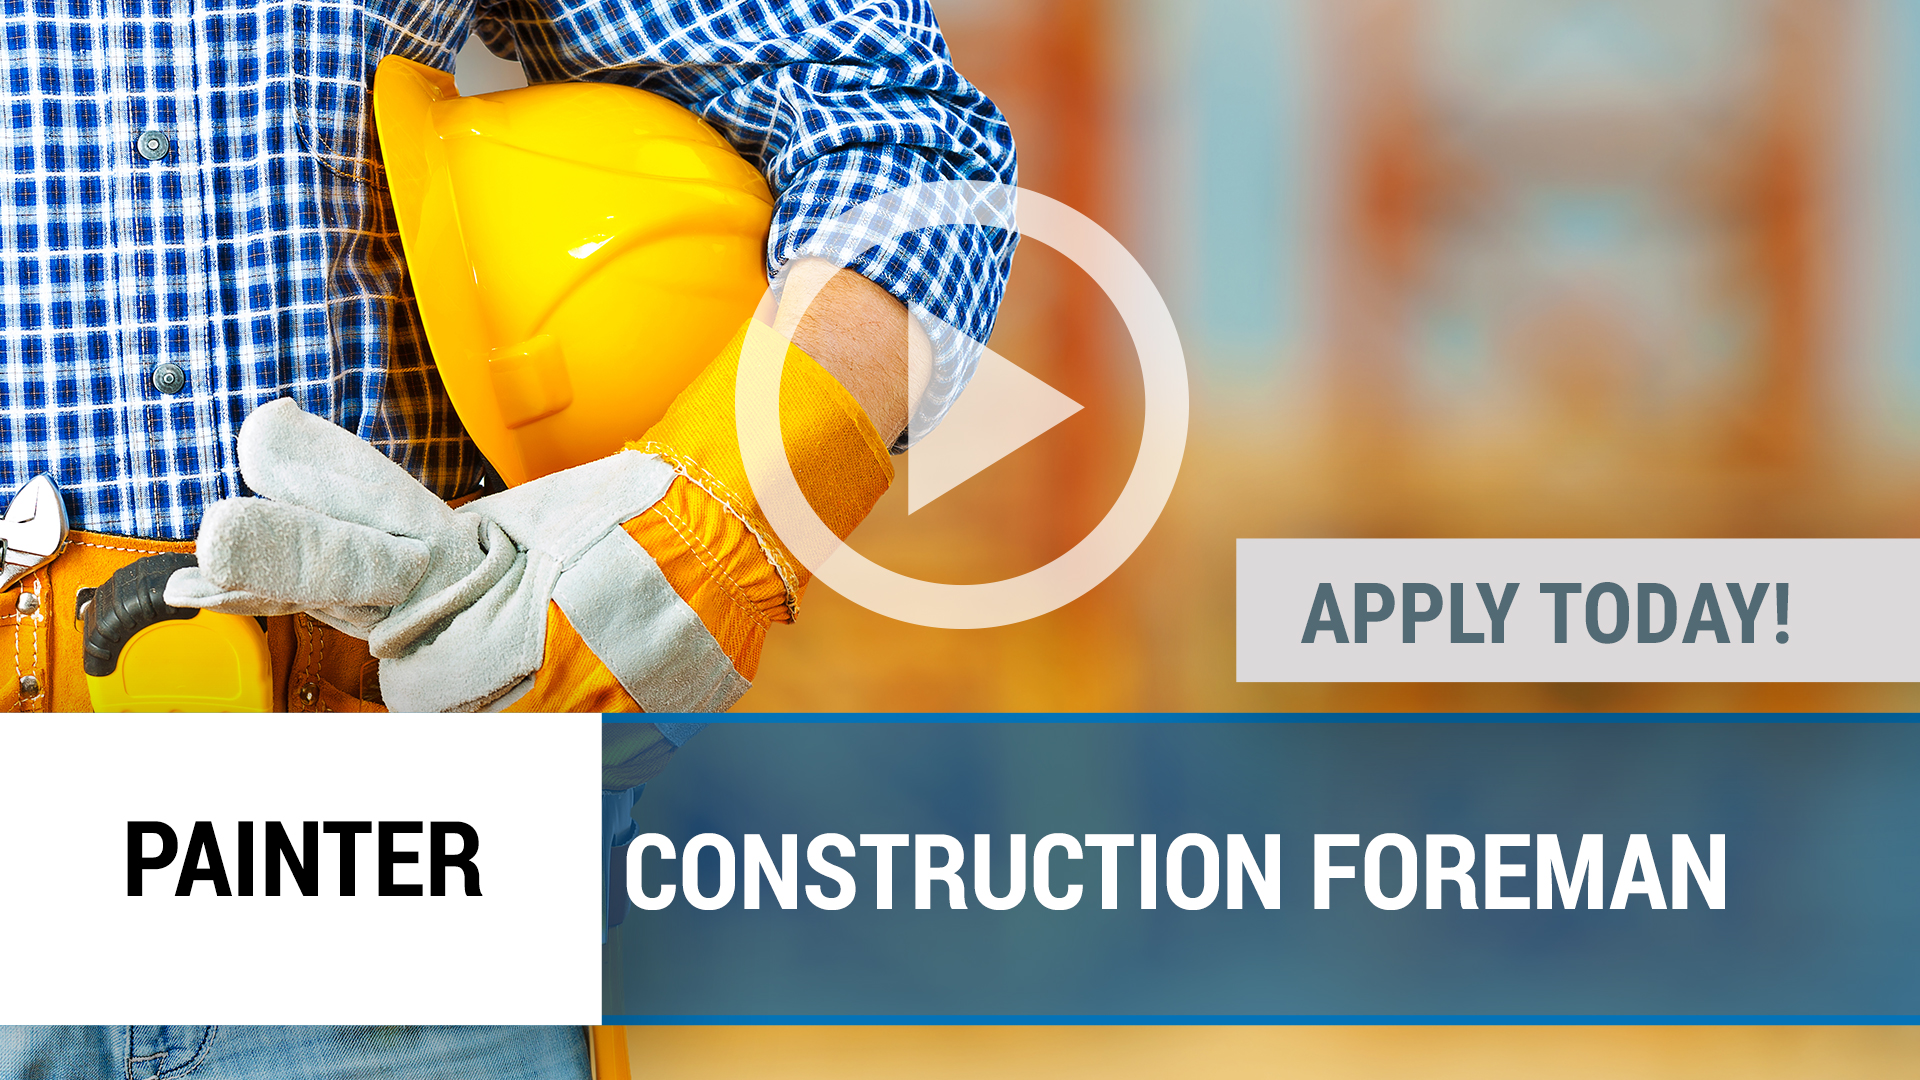 Watch our careers video for available job opening CONSTRUCTION FOREMAN in Joplin, MO